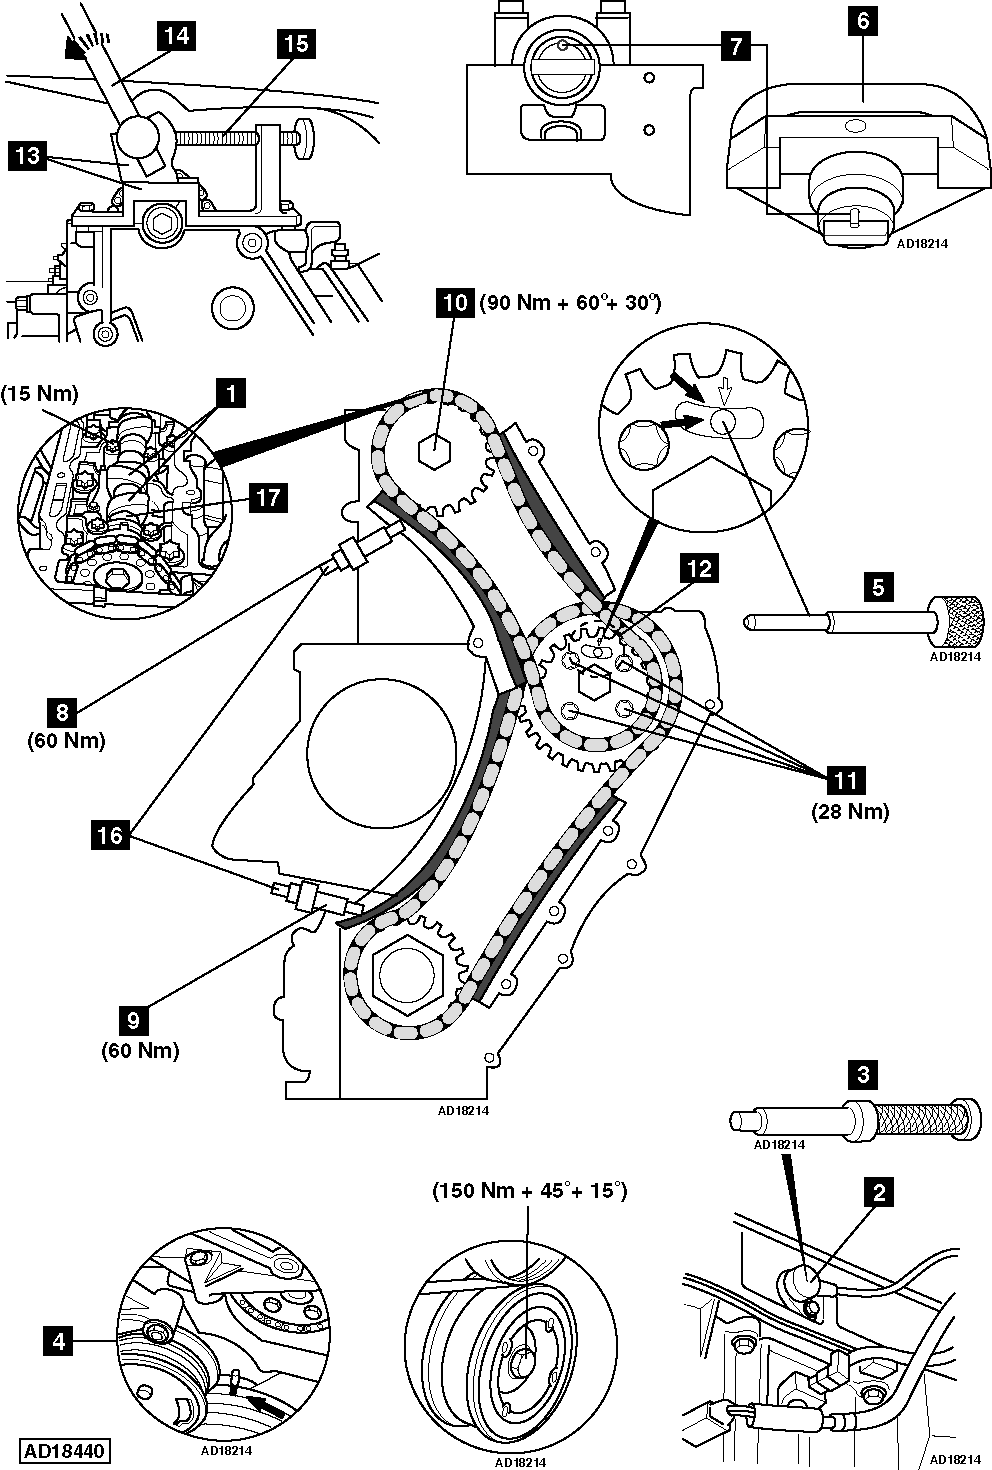 68 furthermore 1979 El Camino Alternator Wiring Diagram in addition Toyota Corolla Sunroof Drain Diagram furthermore 7 3 Idi Fuel Return Line Diagram furthermore 2011 Chrysler 200 Fuse Box Diagram. on mercedes fuel pump diagram